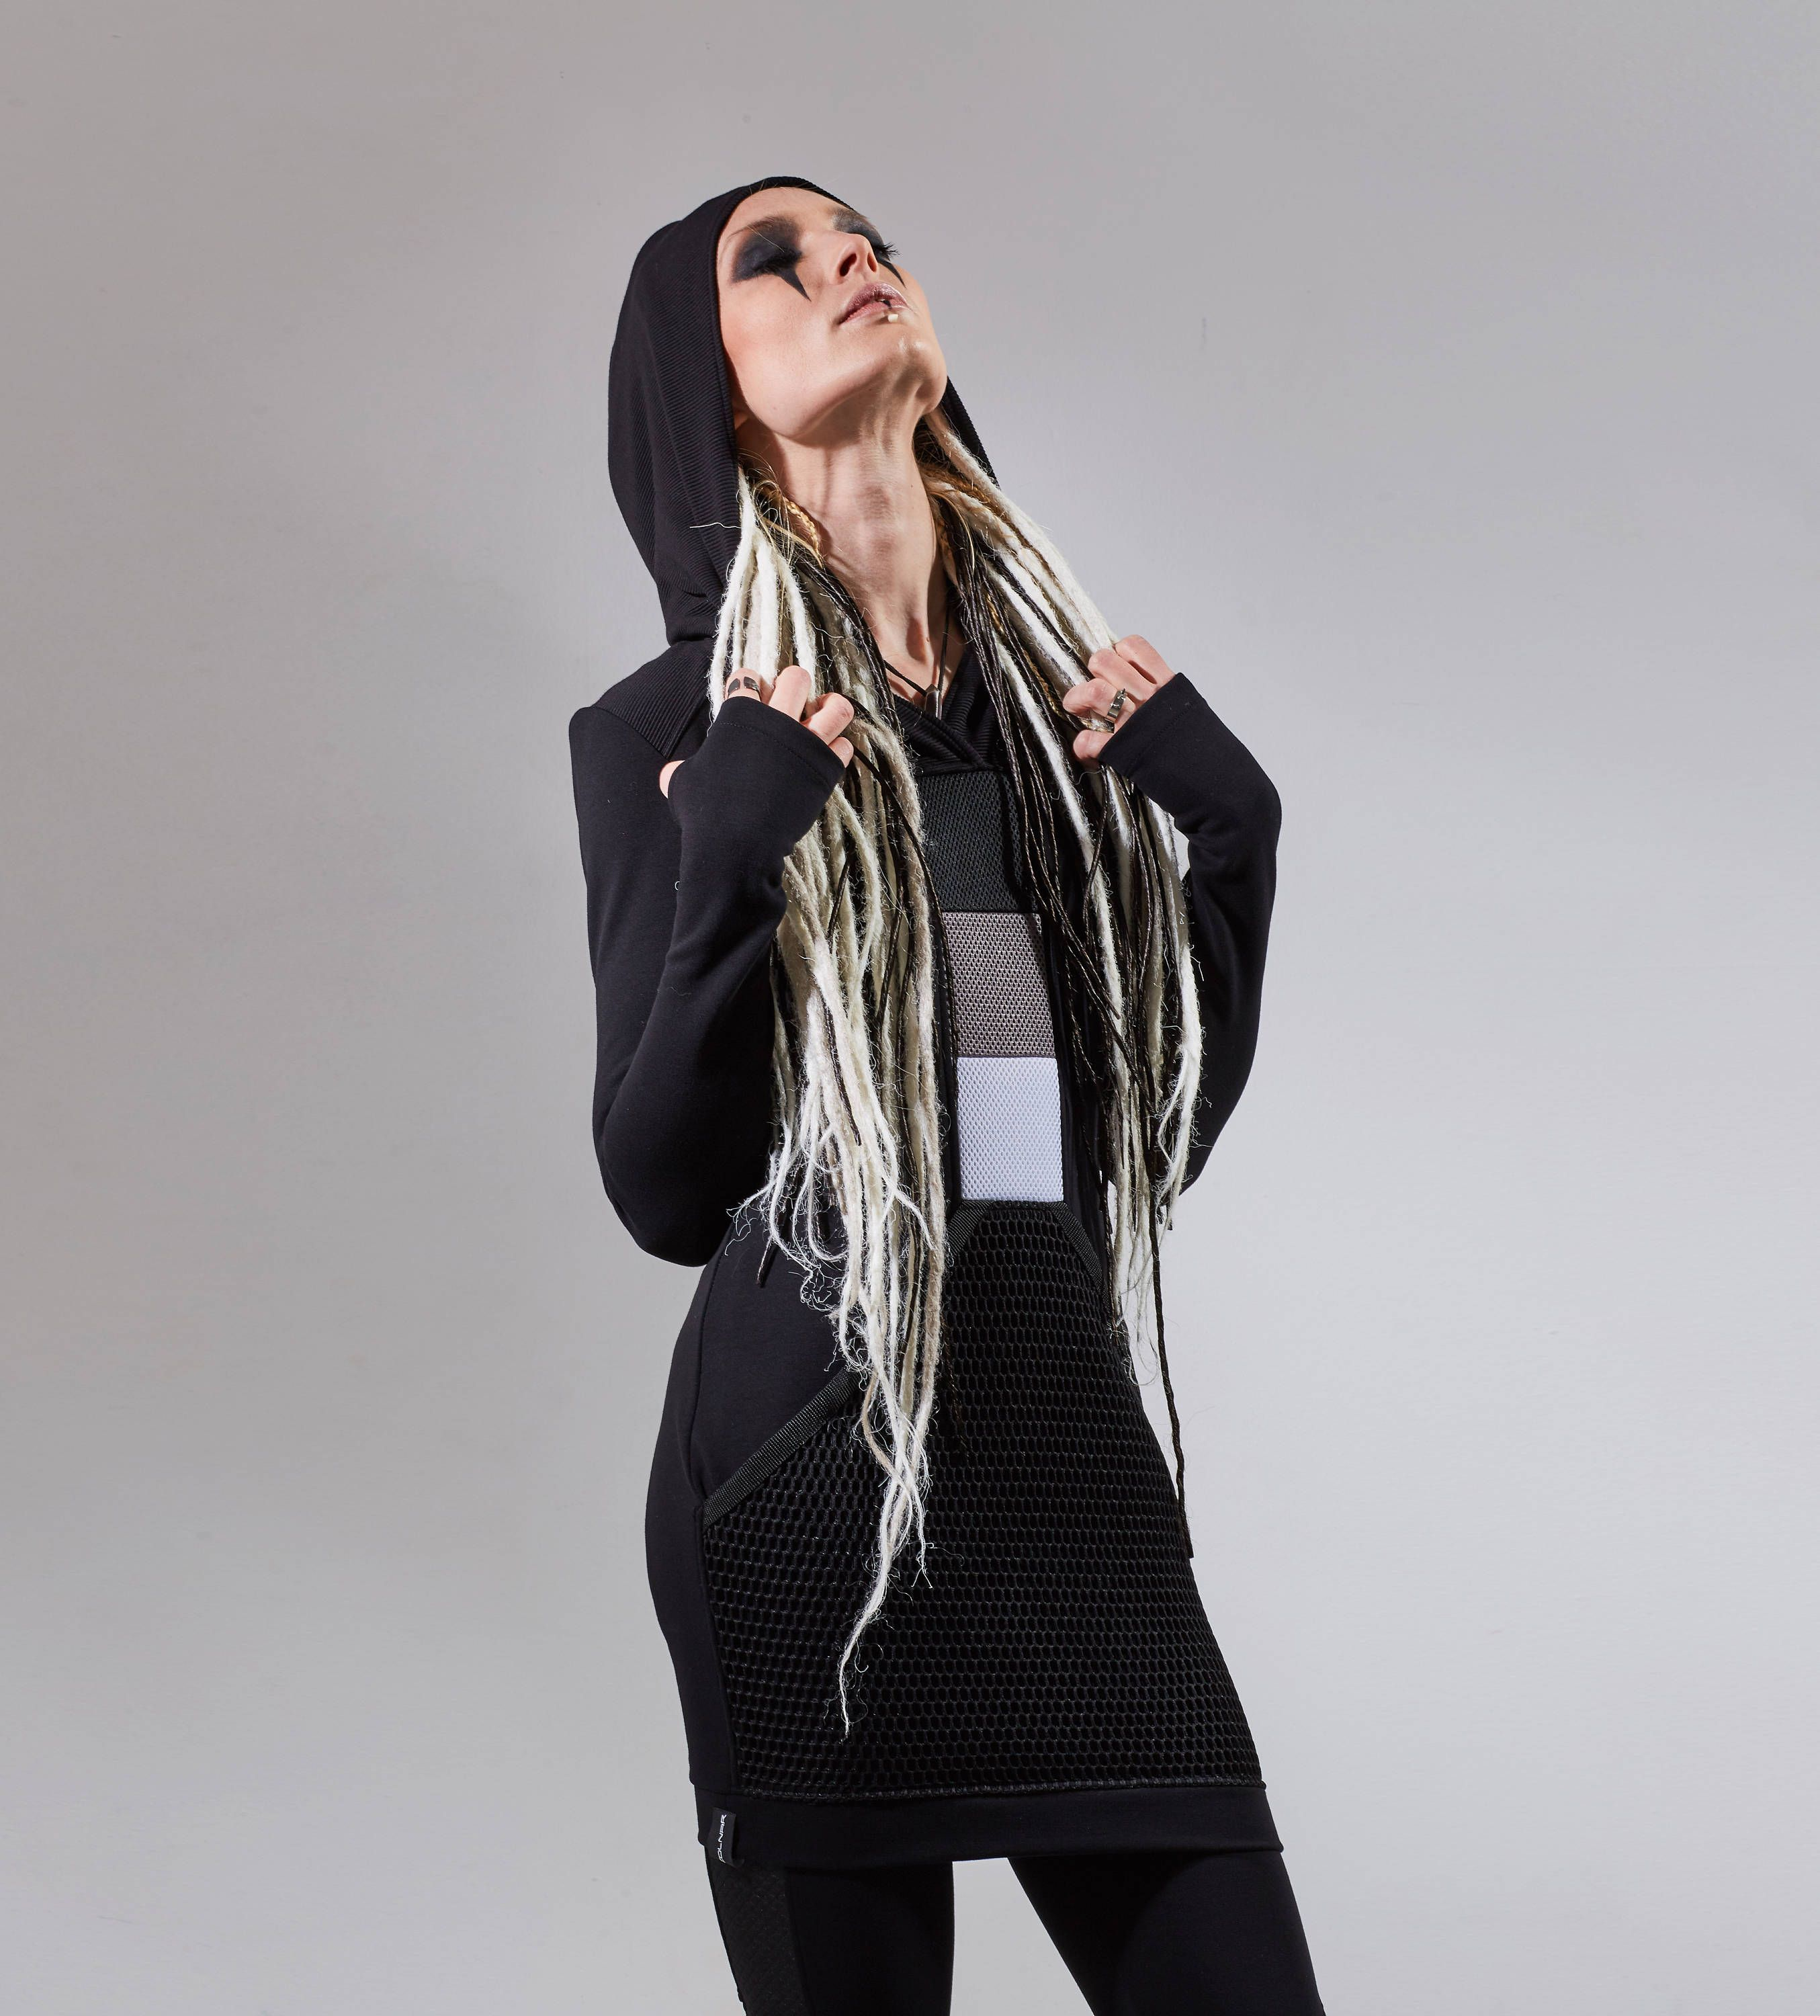 Black long hoodie avant-garde hooded dress with big front pocket, cyberpunk  clothing - SQ3